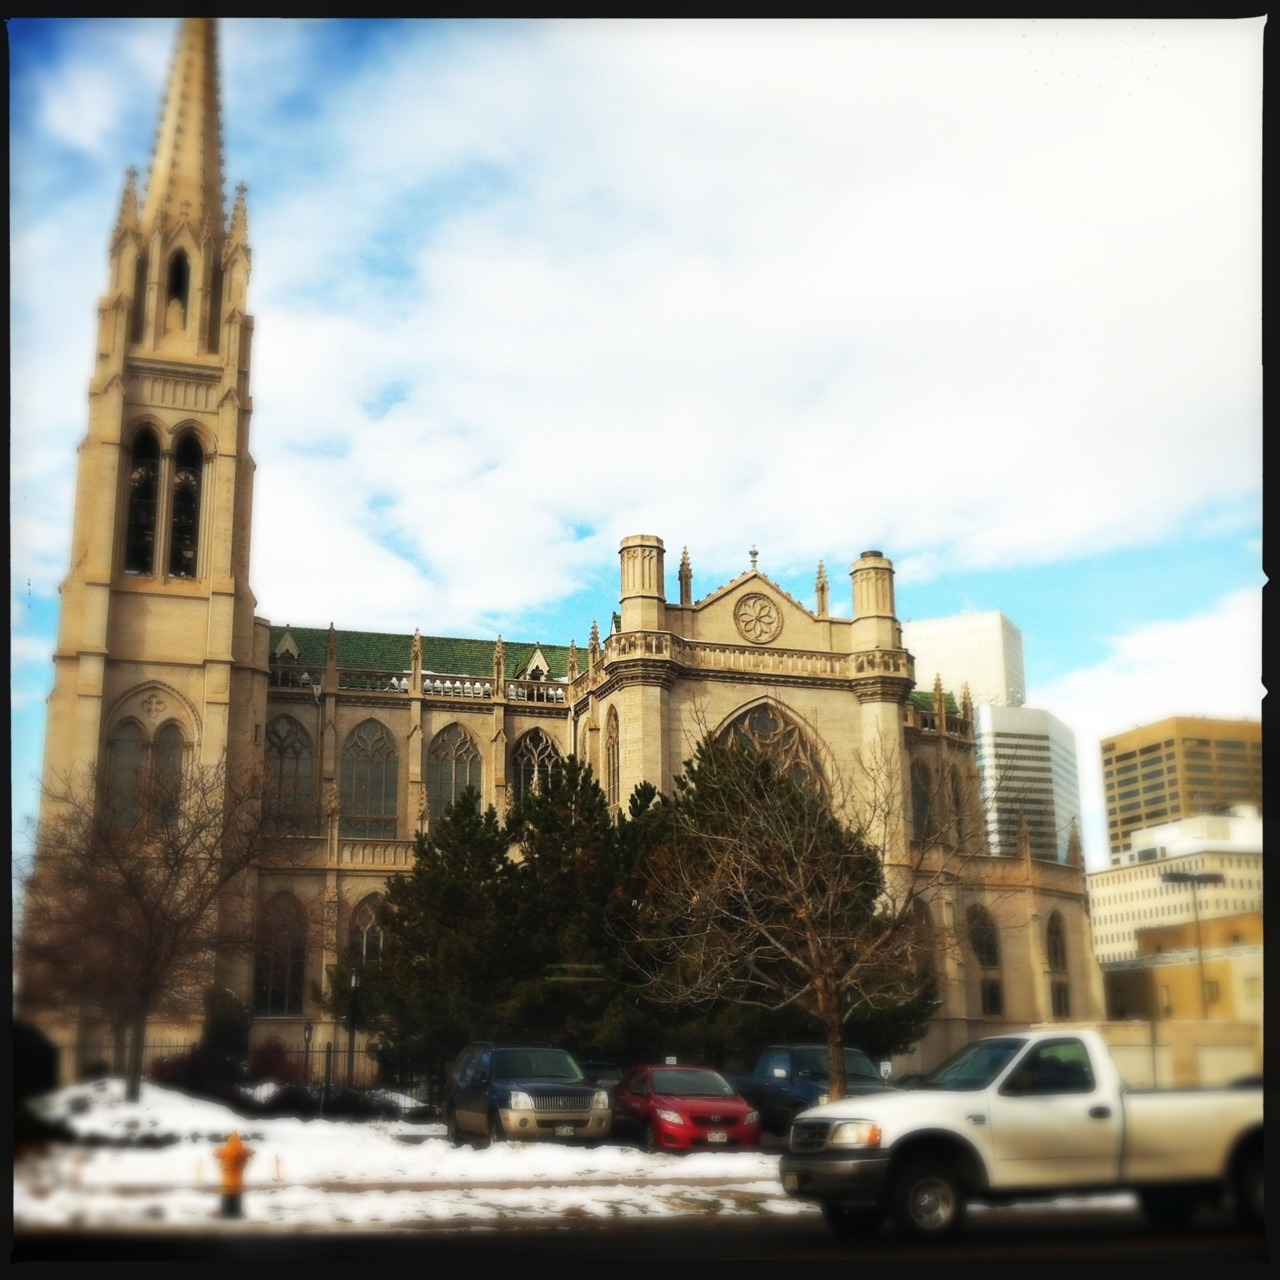 Loftus Lens First Use: Cathedral Taken with Hipstamatic, Loftus Lens, DC Film, No Flash.